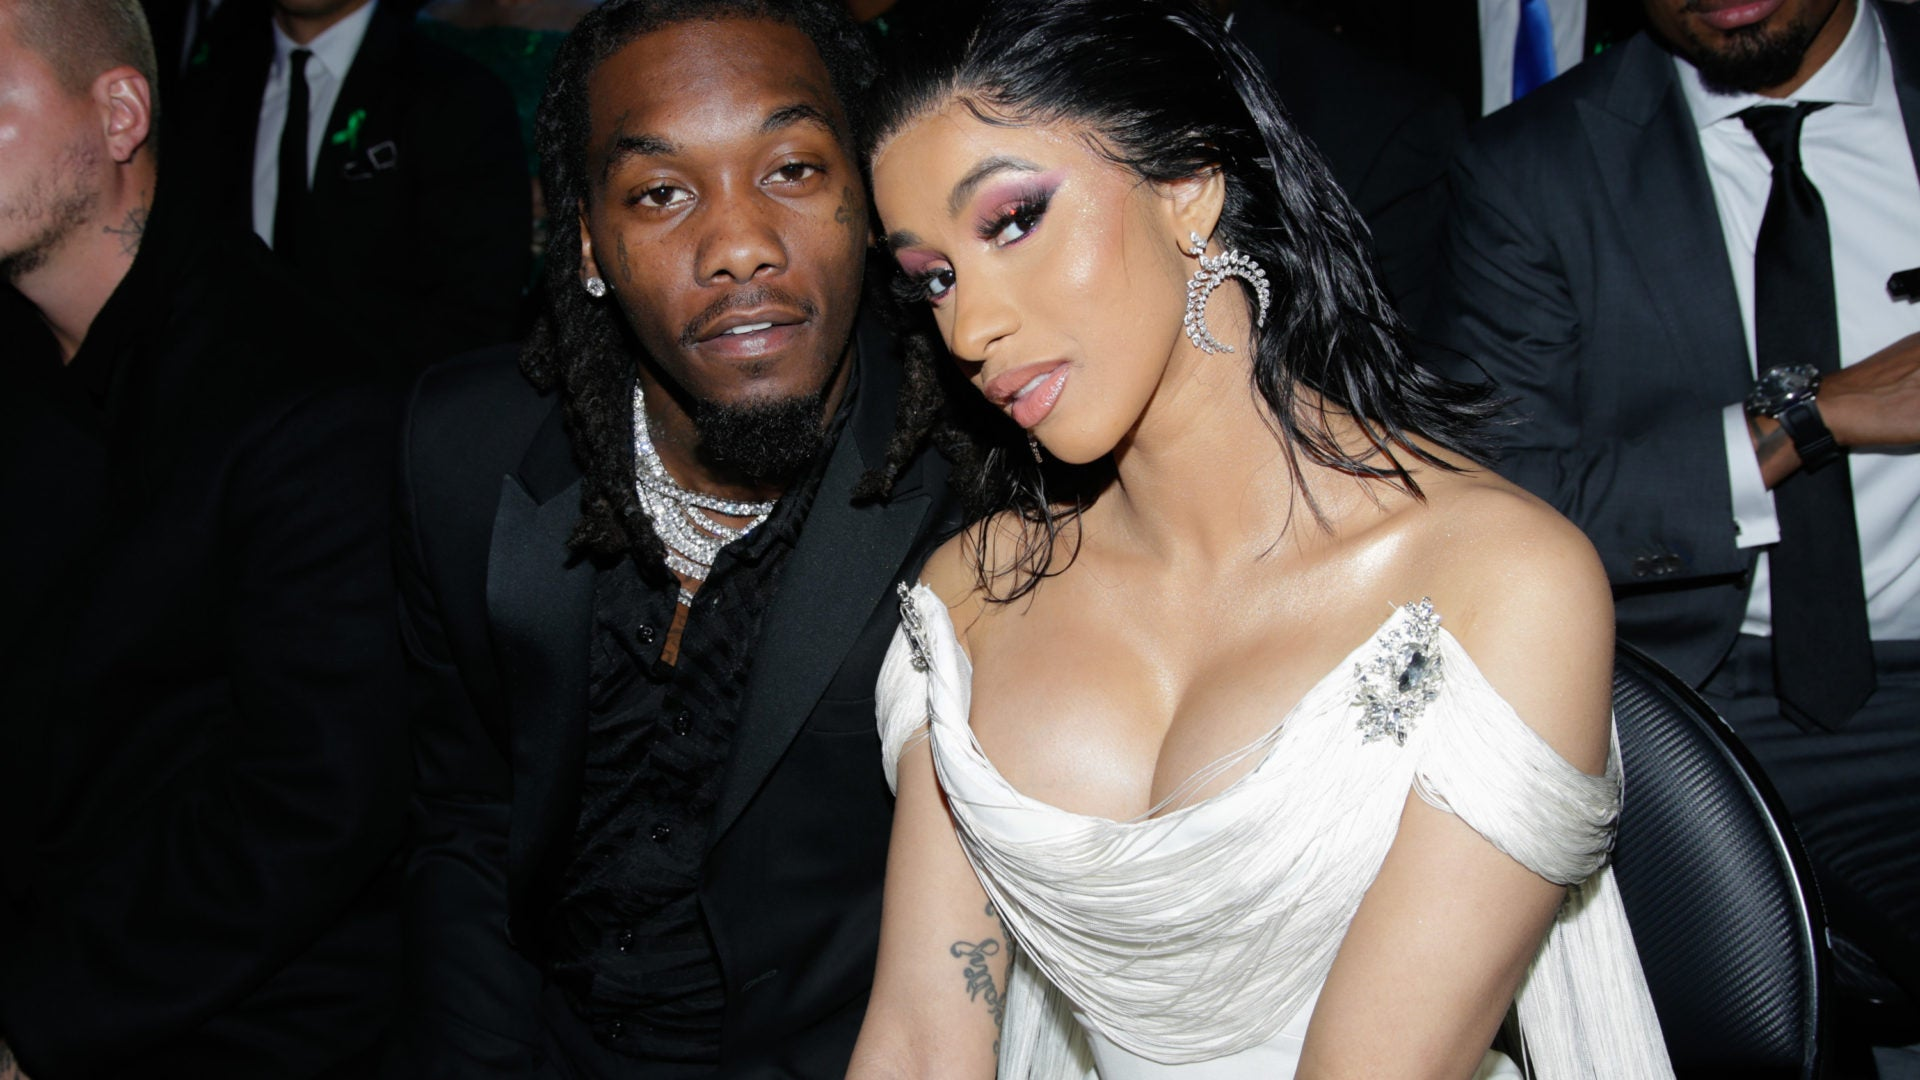 Cardi B And Offset Celebrate Their Second Wedding Anniversary